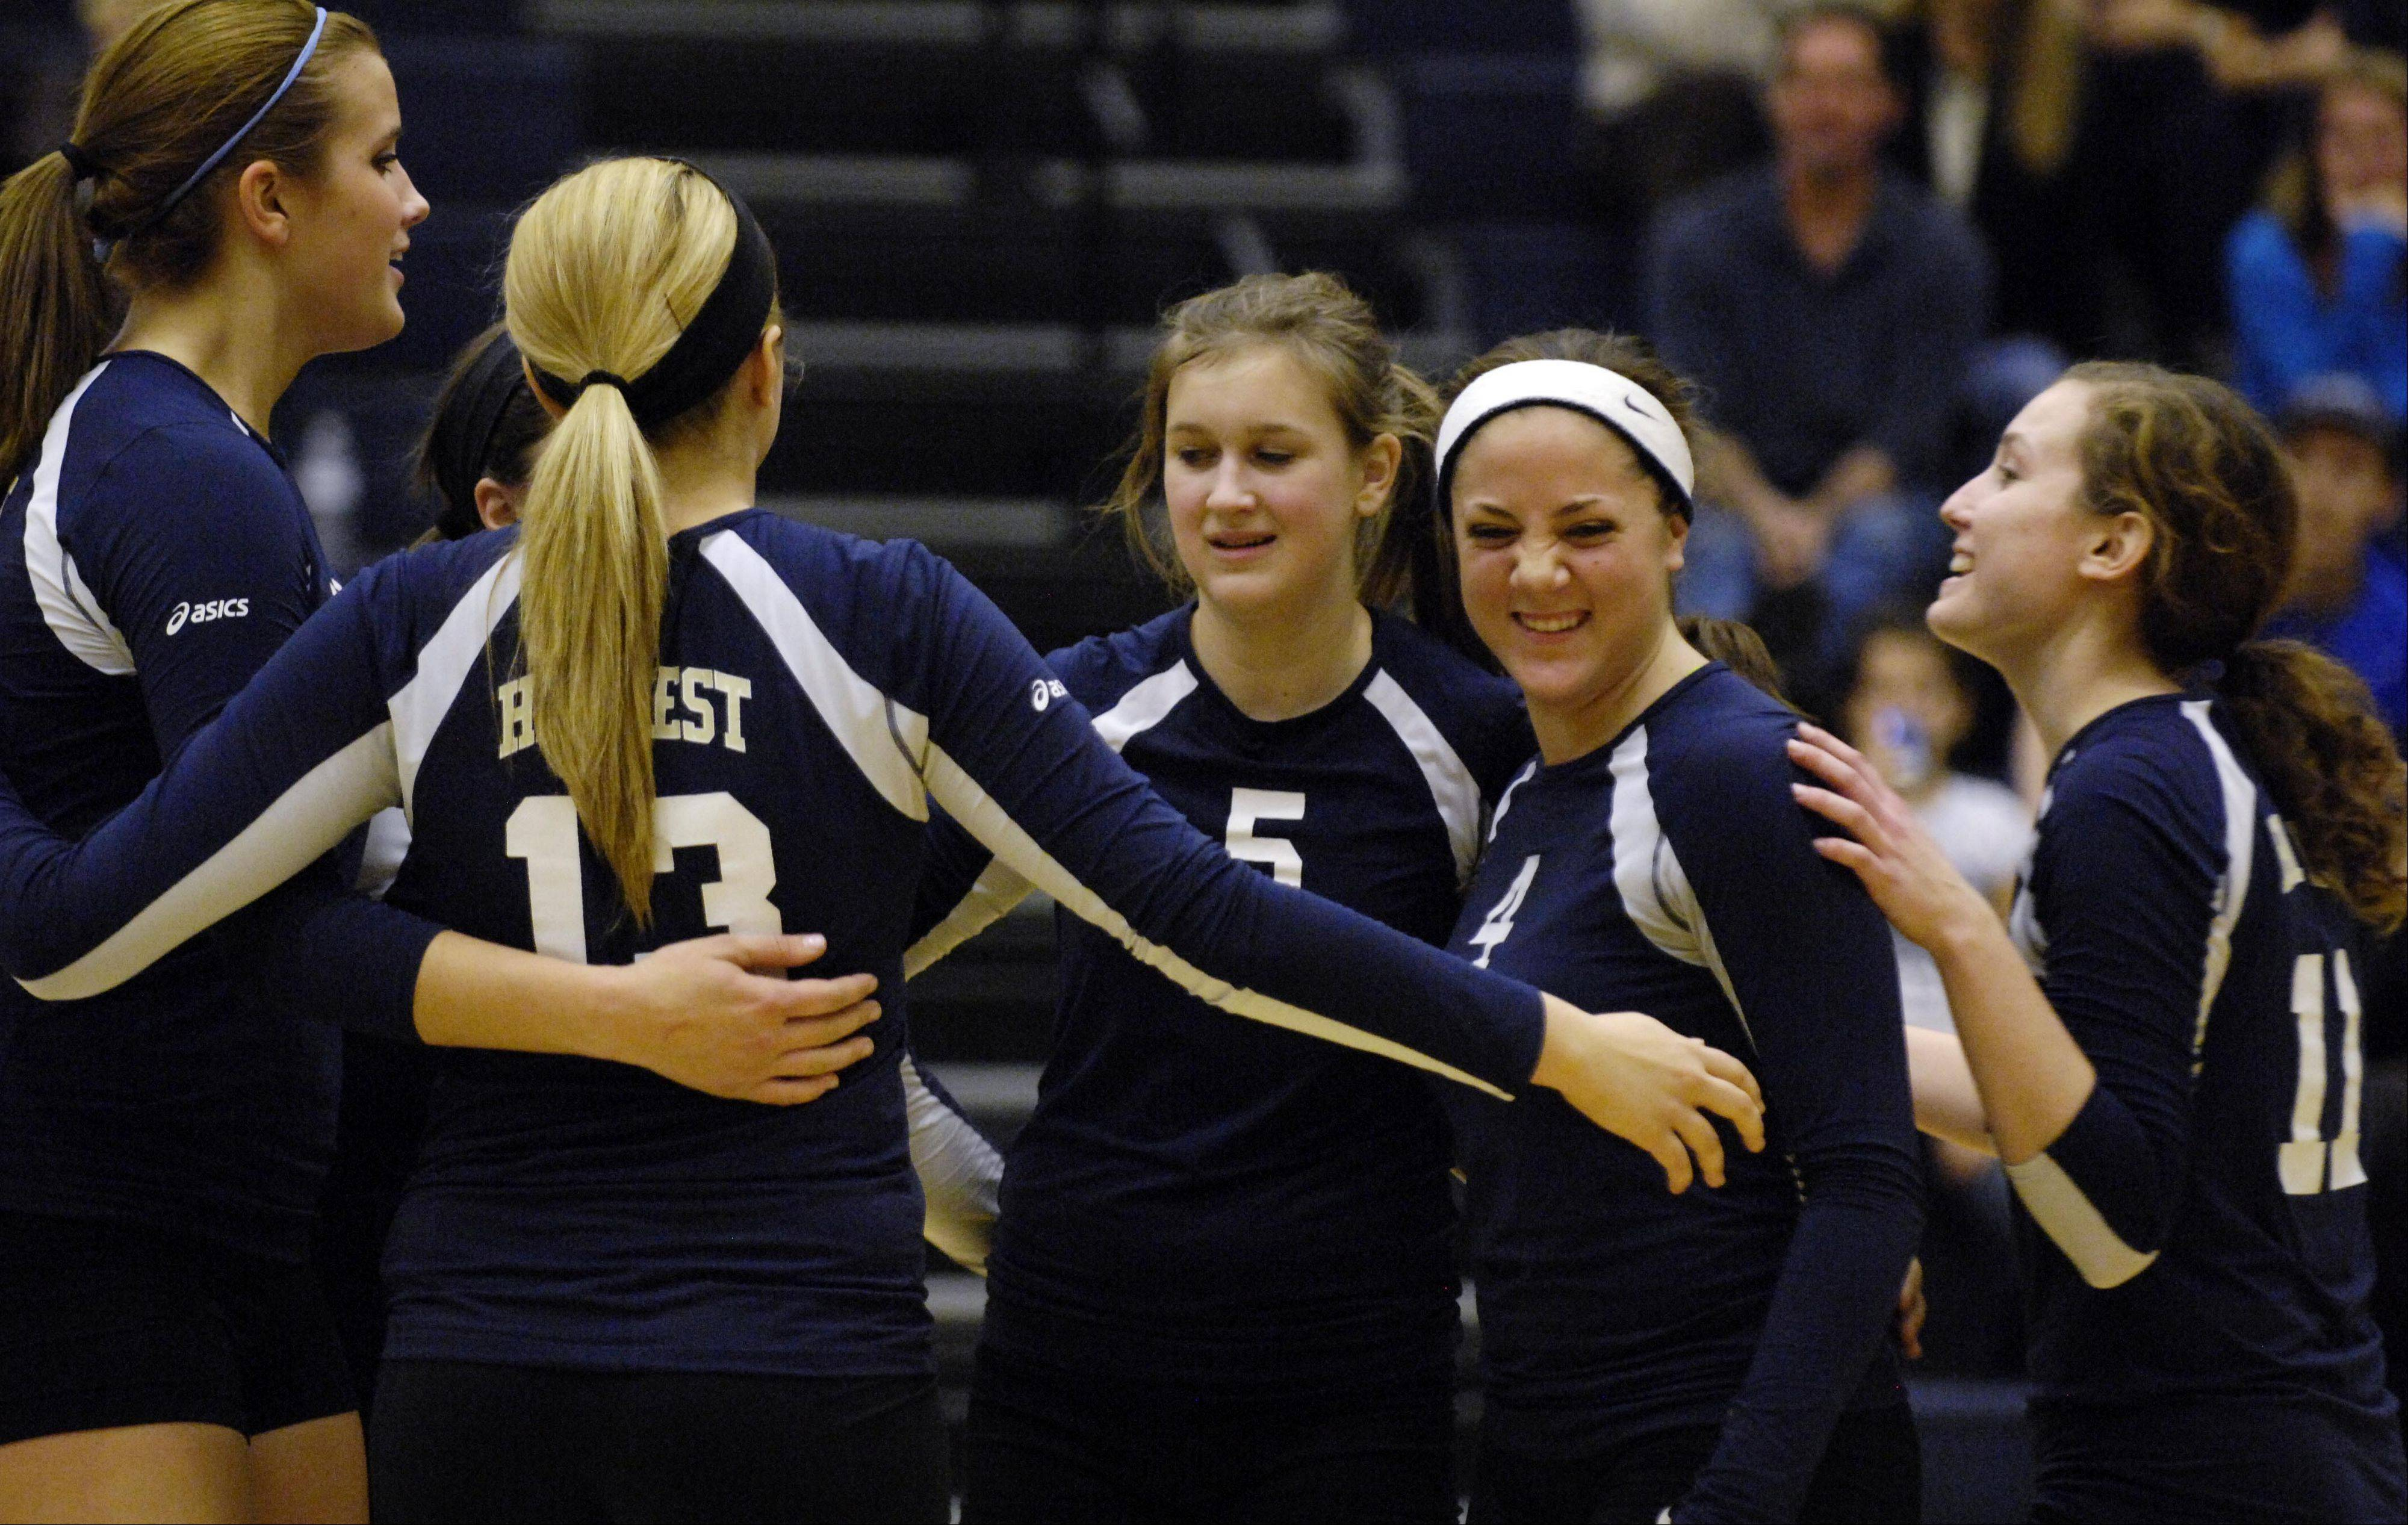 Harvest Christian Academy's Shayna Manusos (with headband) smiles with teammates as they play Chicagoland Jewish Tuesday during the sectional match in Elgin. Harvest won in two games.